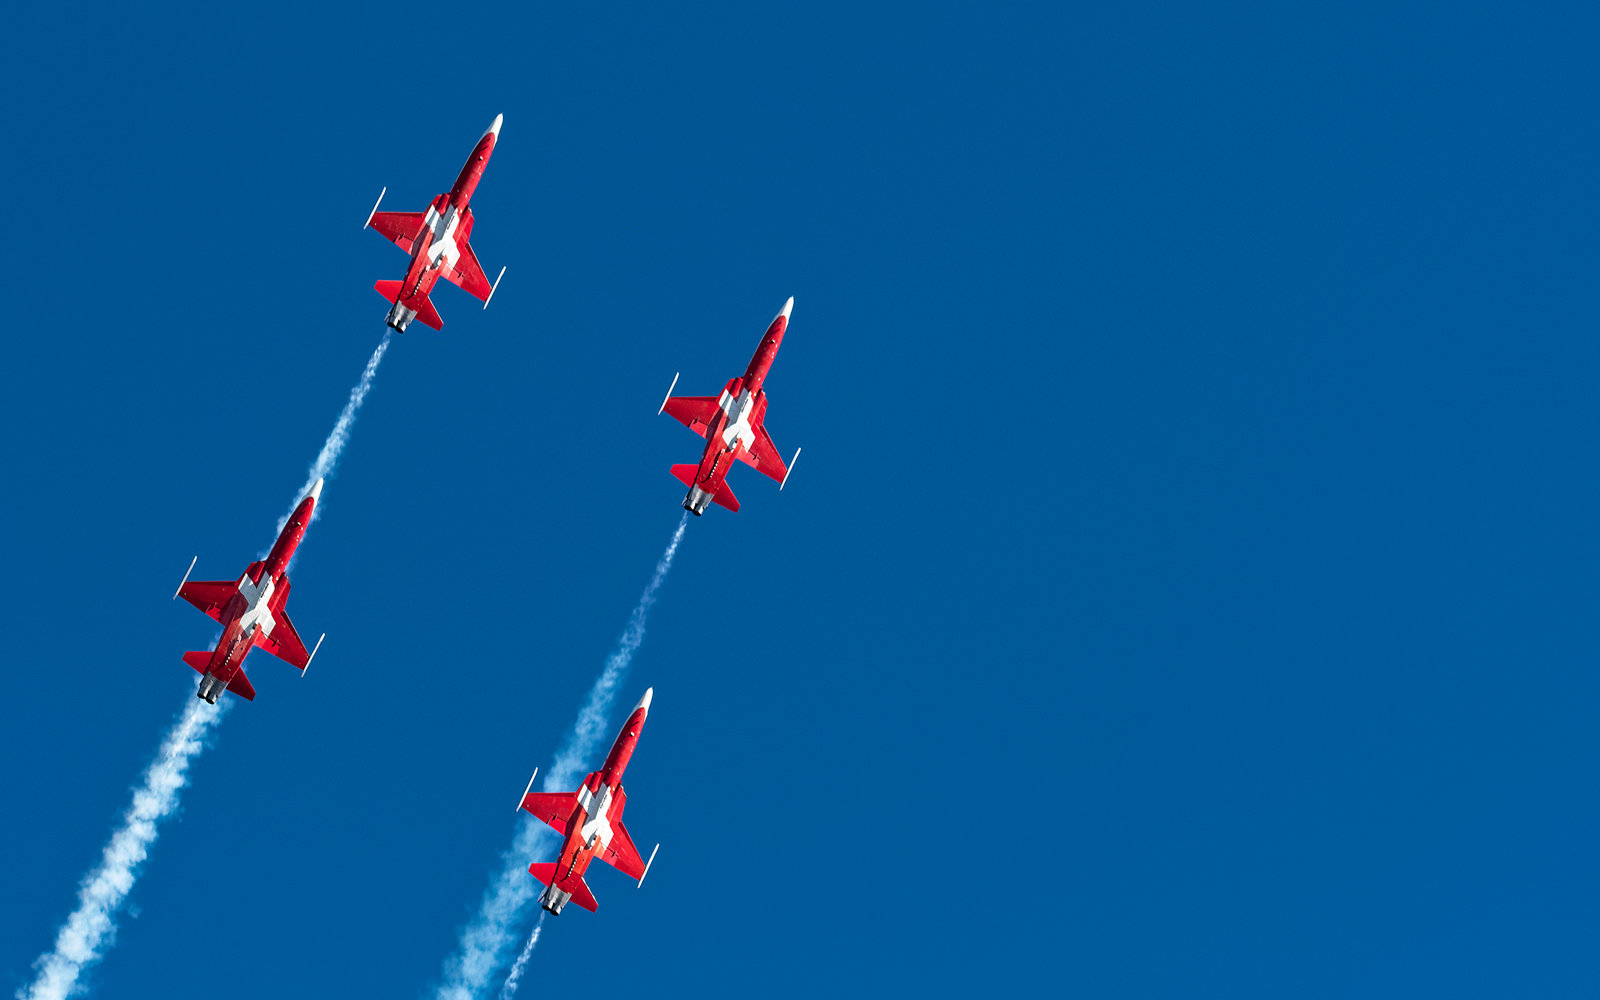 Swiss Aerial team